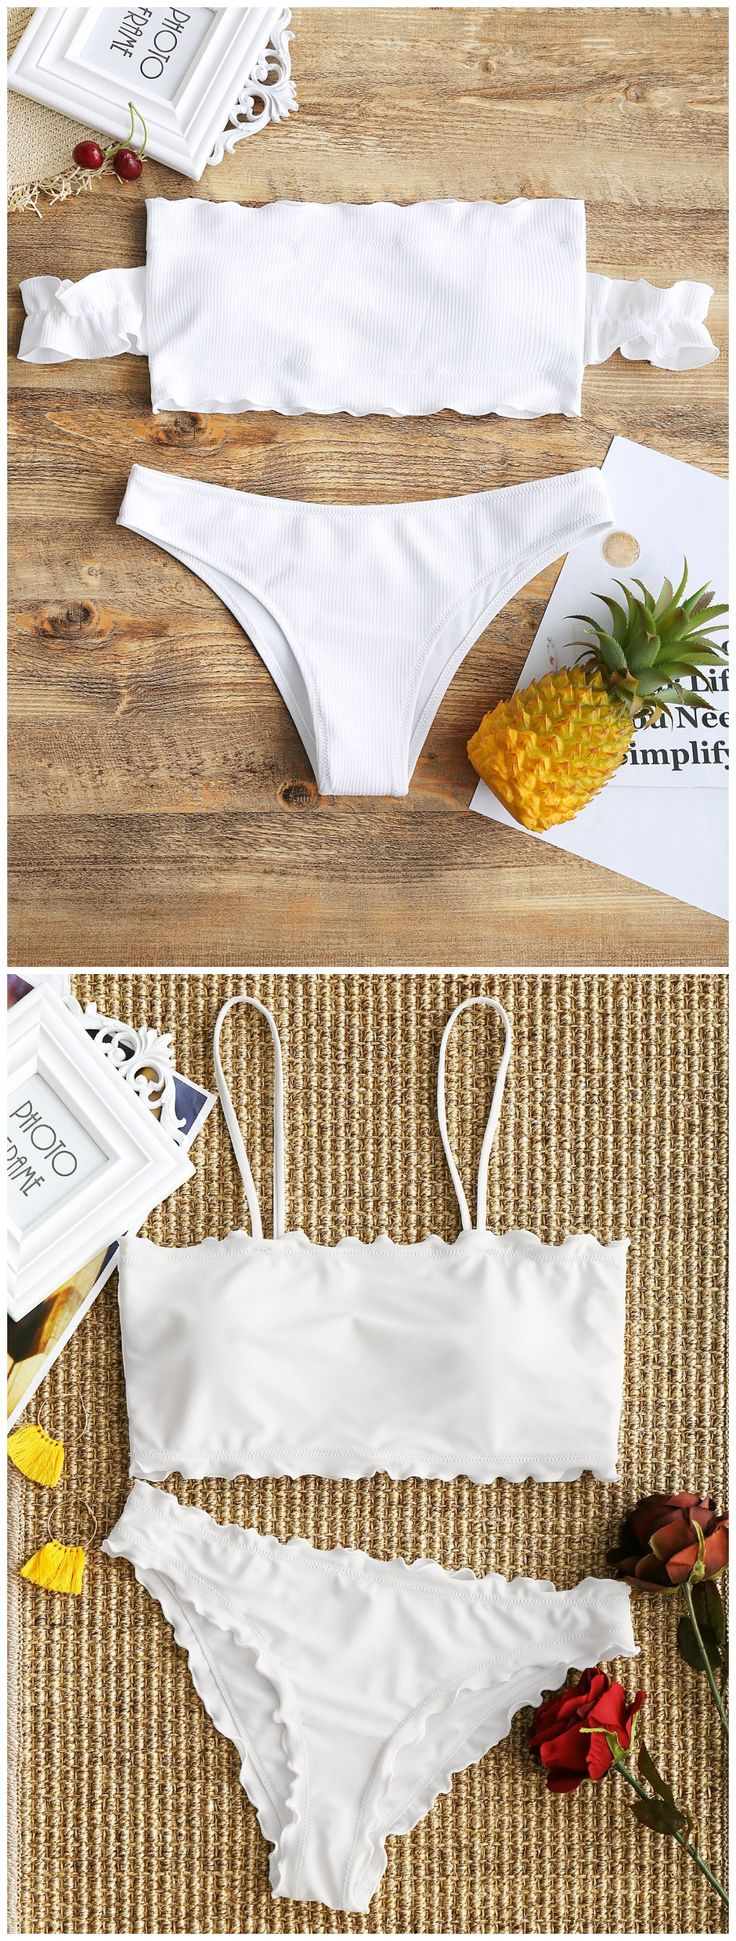 Up to 80% OFF! Lettuce Trim Cami Bikini Set. #Zaful #Swimwear #Bikinis zaful,zaful outfits,zaful dresses,spring outfits,summer dresses,Valentine's Day,valentines day ideas,cute,casual,fashion,style,bathing suit,swimsuits,one pieces,swimwear,bikini set,bikini,one piece swimwear,beach outfit,swimwear cover ups,high waisted swimsuit,tankini,high cut one piece swimsuit,high waisted swimsuit,swimwear modest,swimsuit modest,cover ups,swimsuit cover up @zaful Extra 10% OFF Code:ZF2017